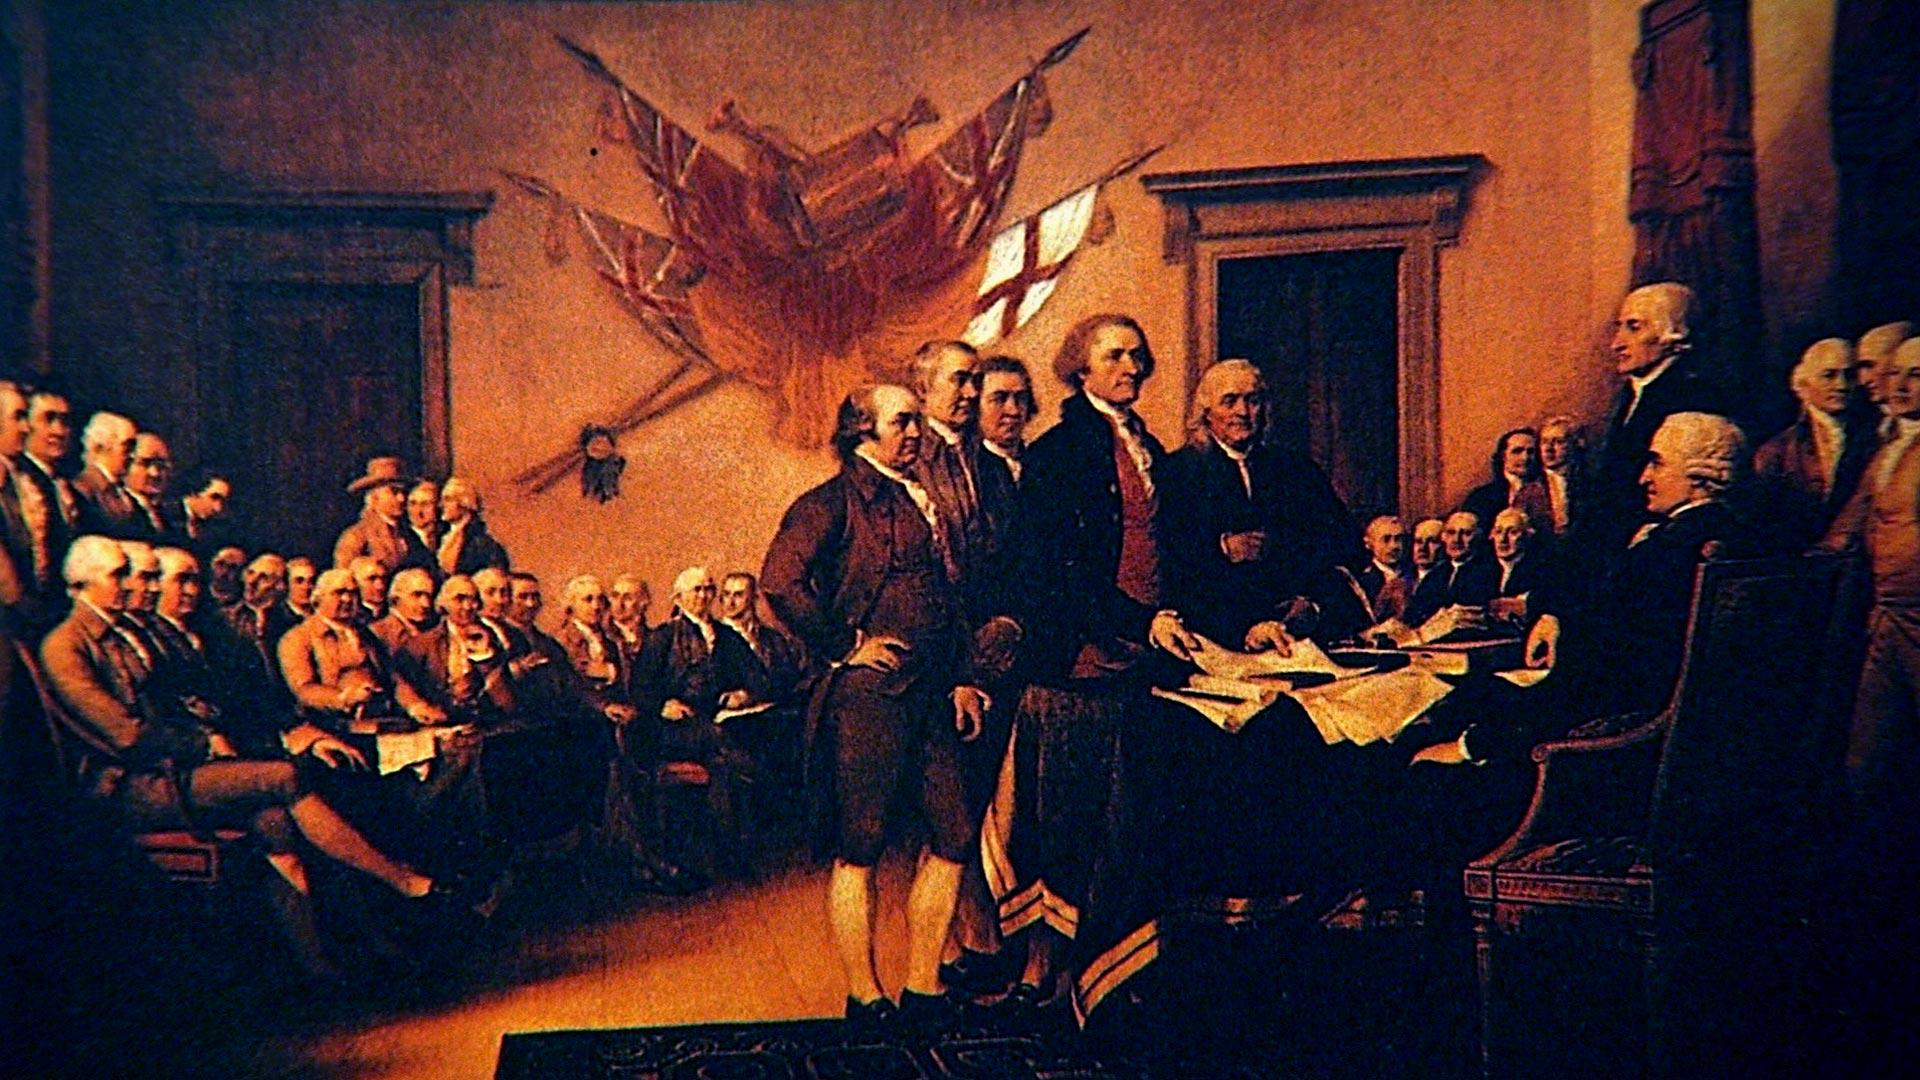 englishm americas founding documents - HD 1920×1080